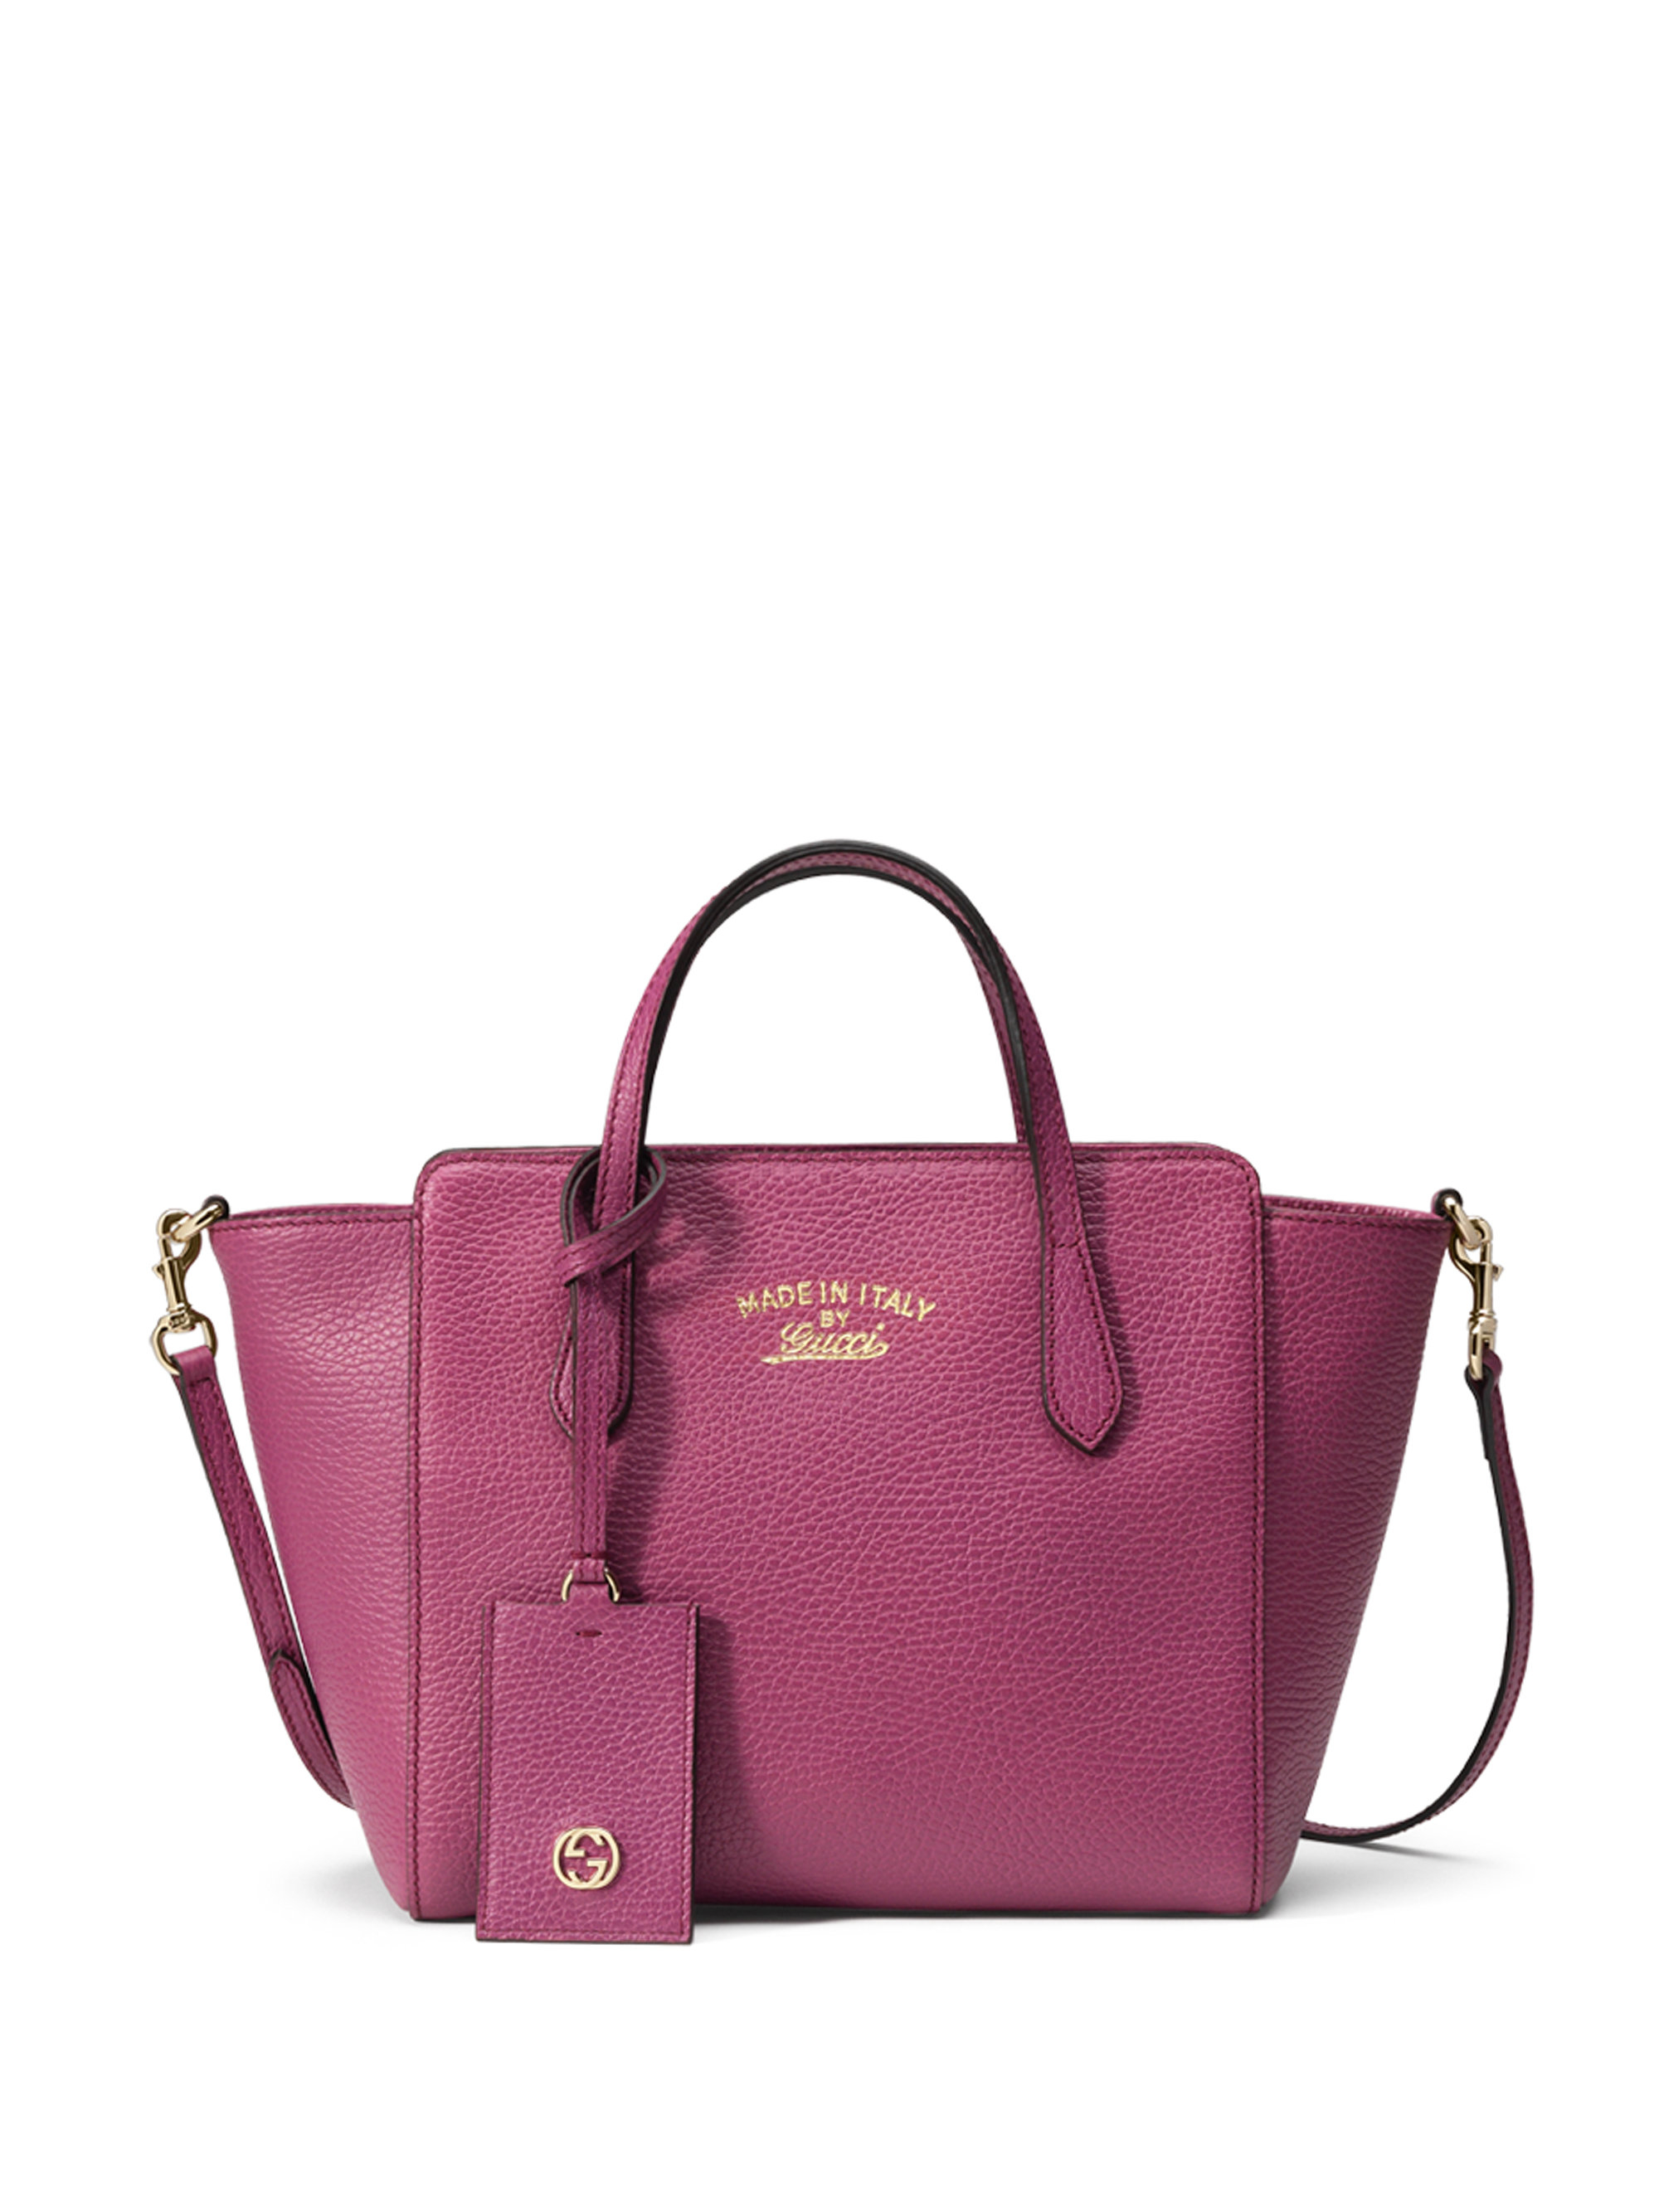 ab8a723c46782c Gucci Swing Small Crossbody Bag | Stanford Center for Opportunity ...